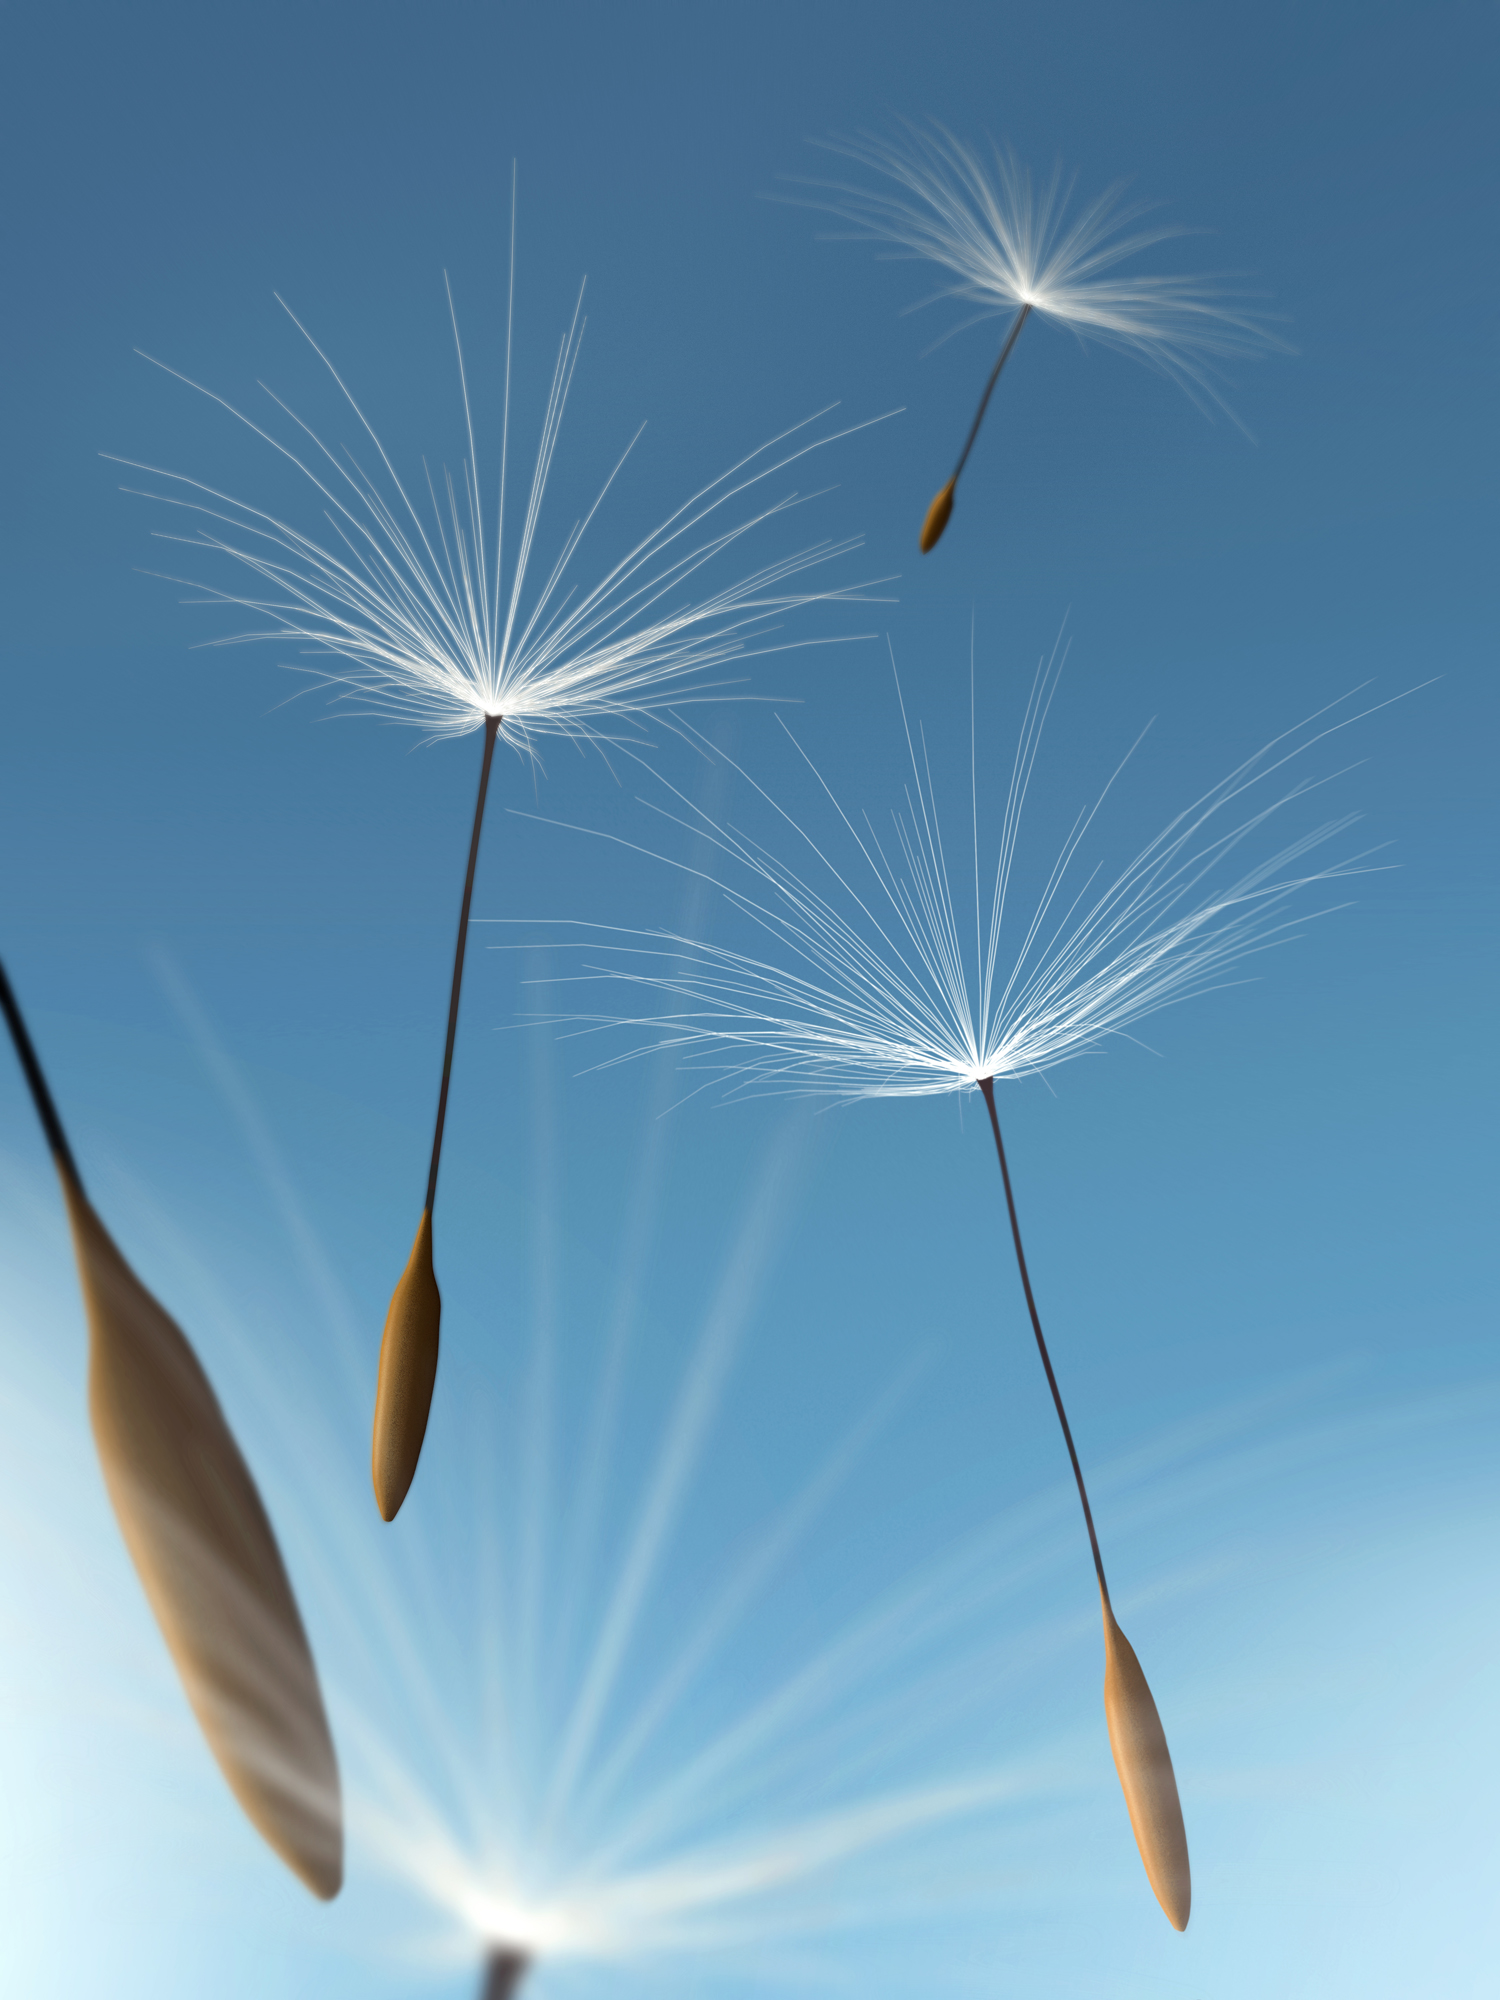 Floating dandelion seeds